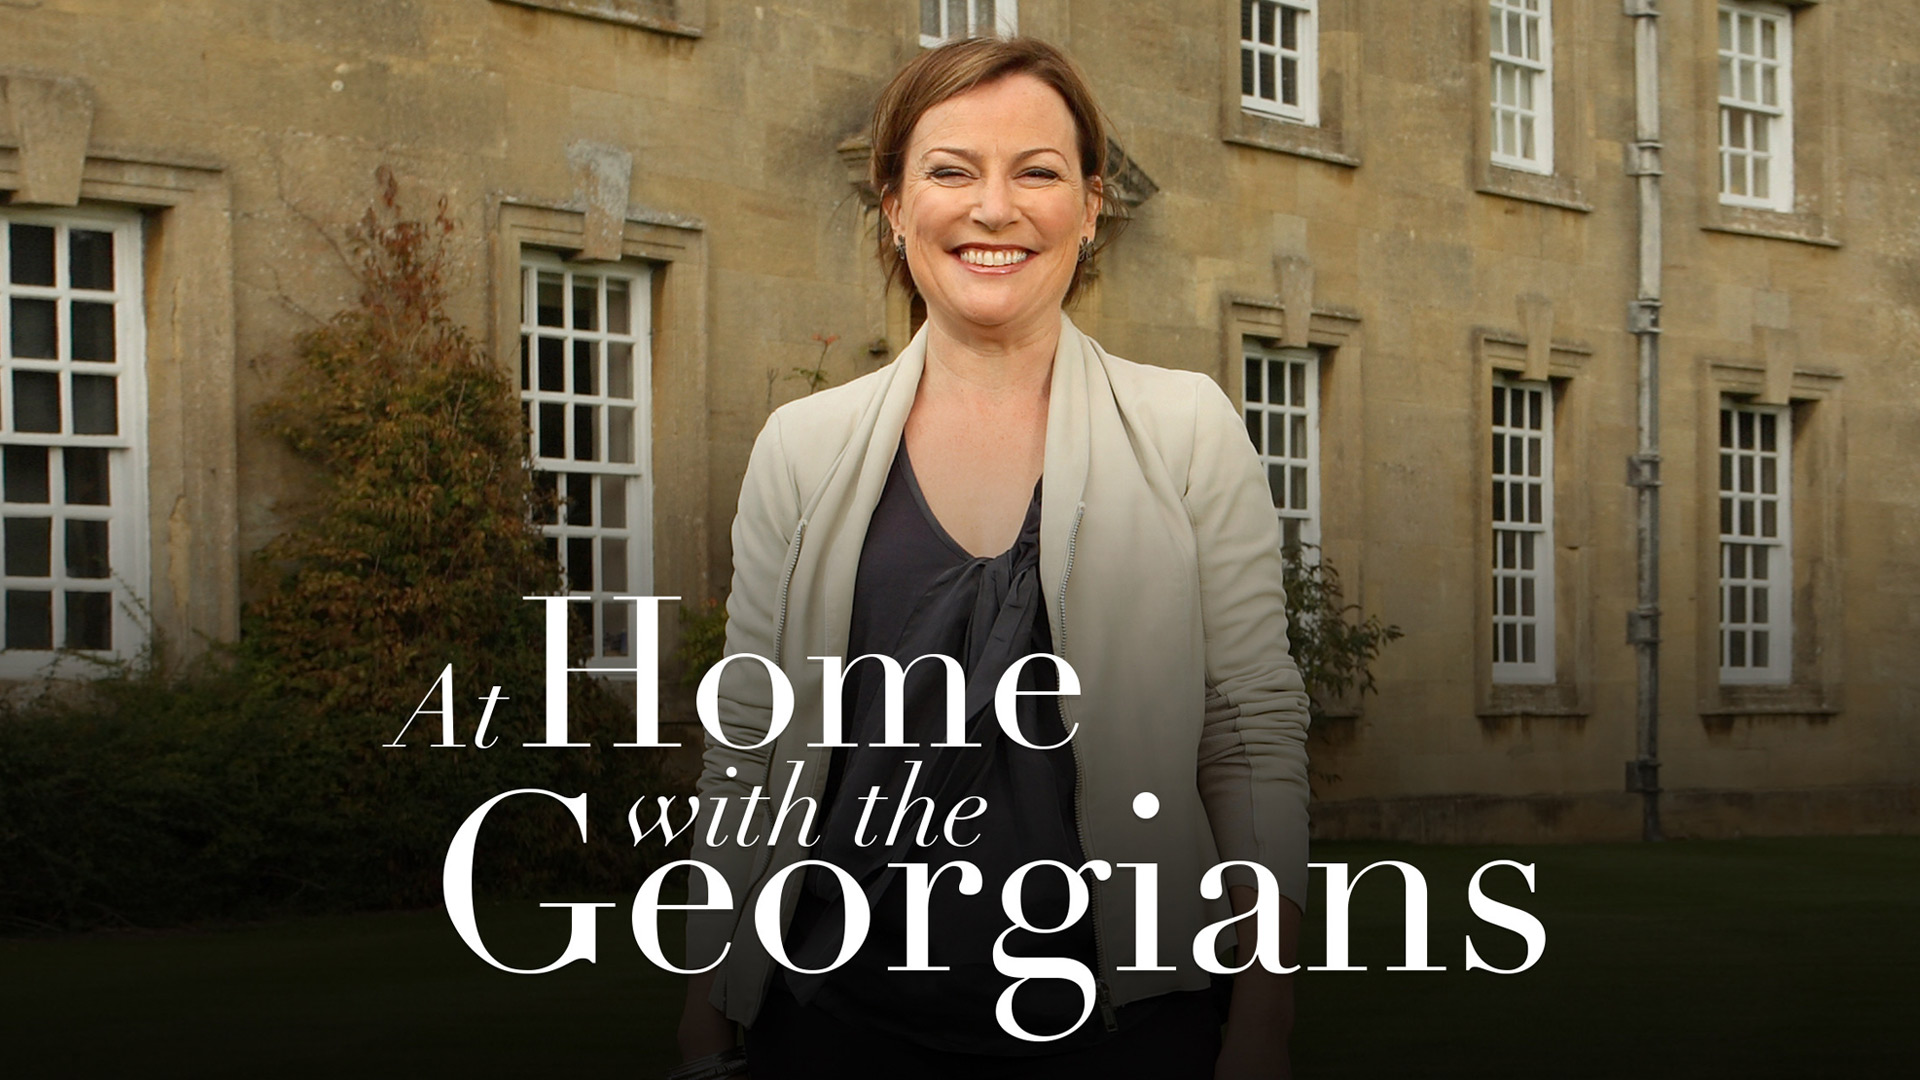 At Home with the Georgians - Series 1